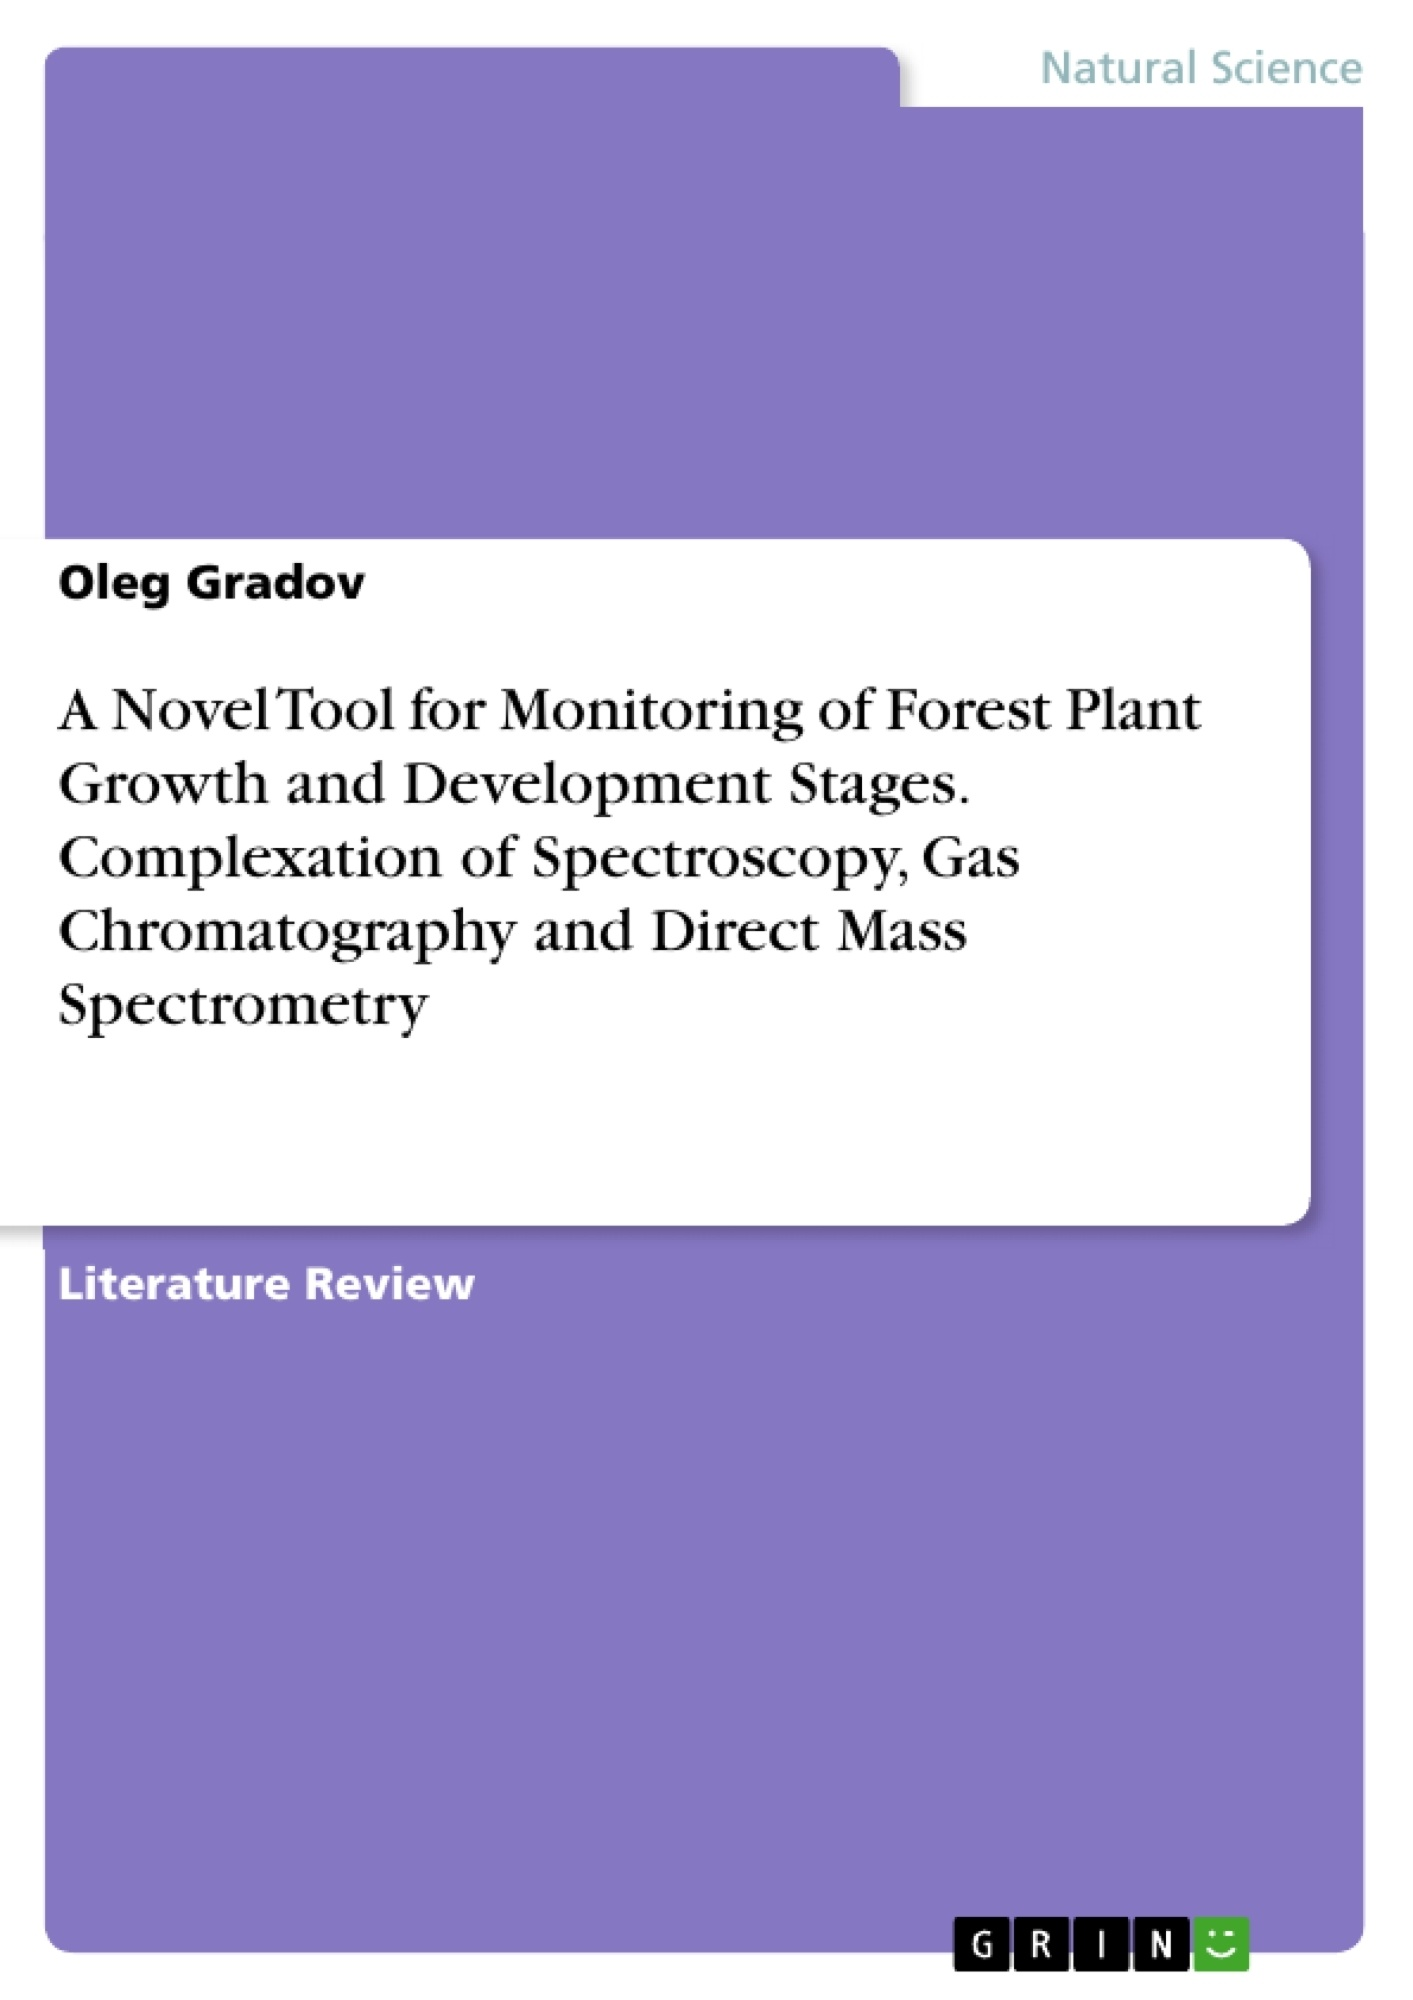 Title: A Novel Tool for Monitoring of Forest Plant Growth and Development Stages. Complexation of Spectroscopy, Gas Chromatography and Direct Mass Spectrometry